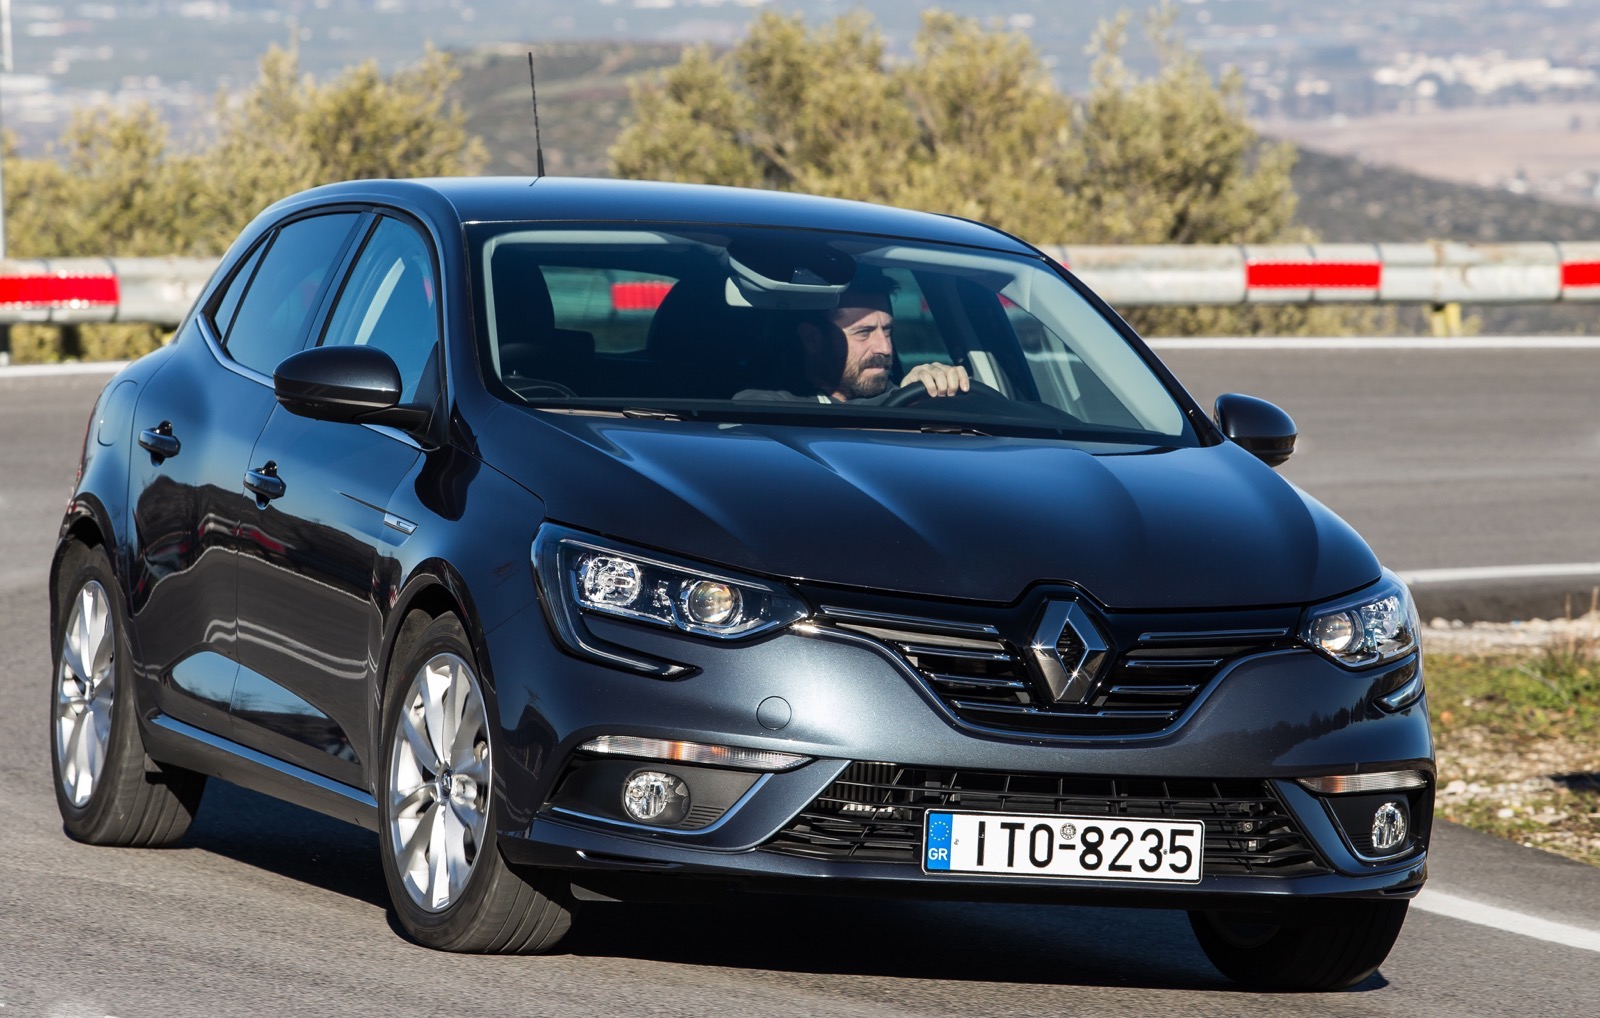 First_Drive_Renault_Megane_64